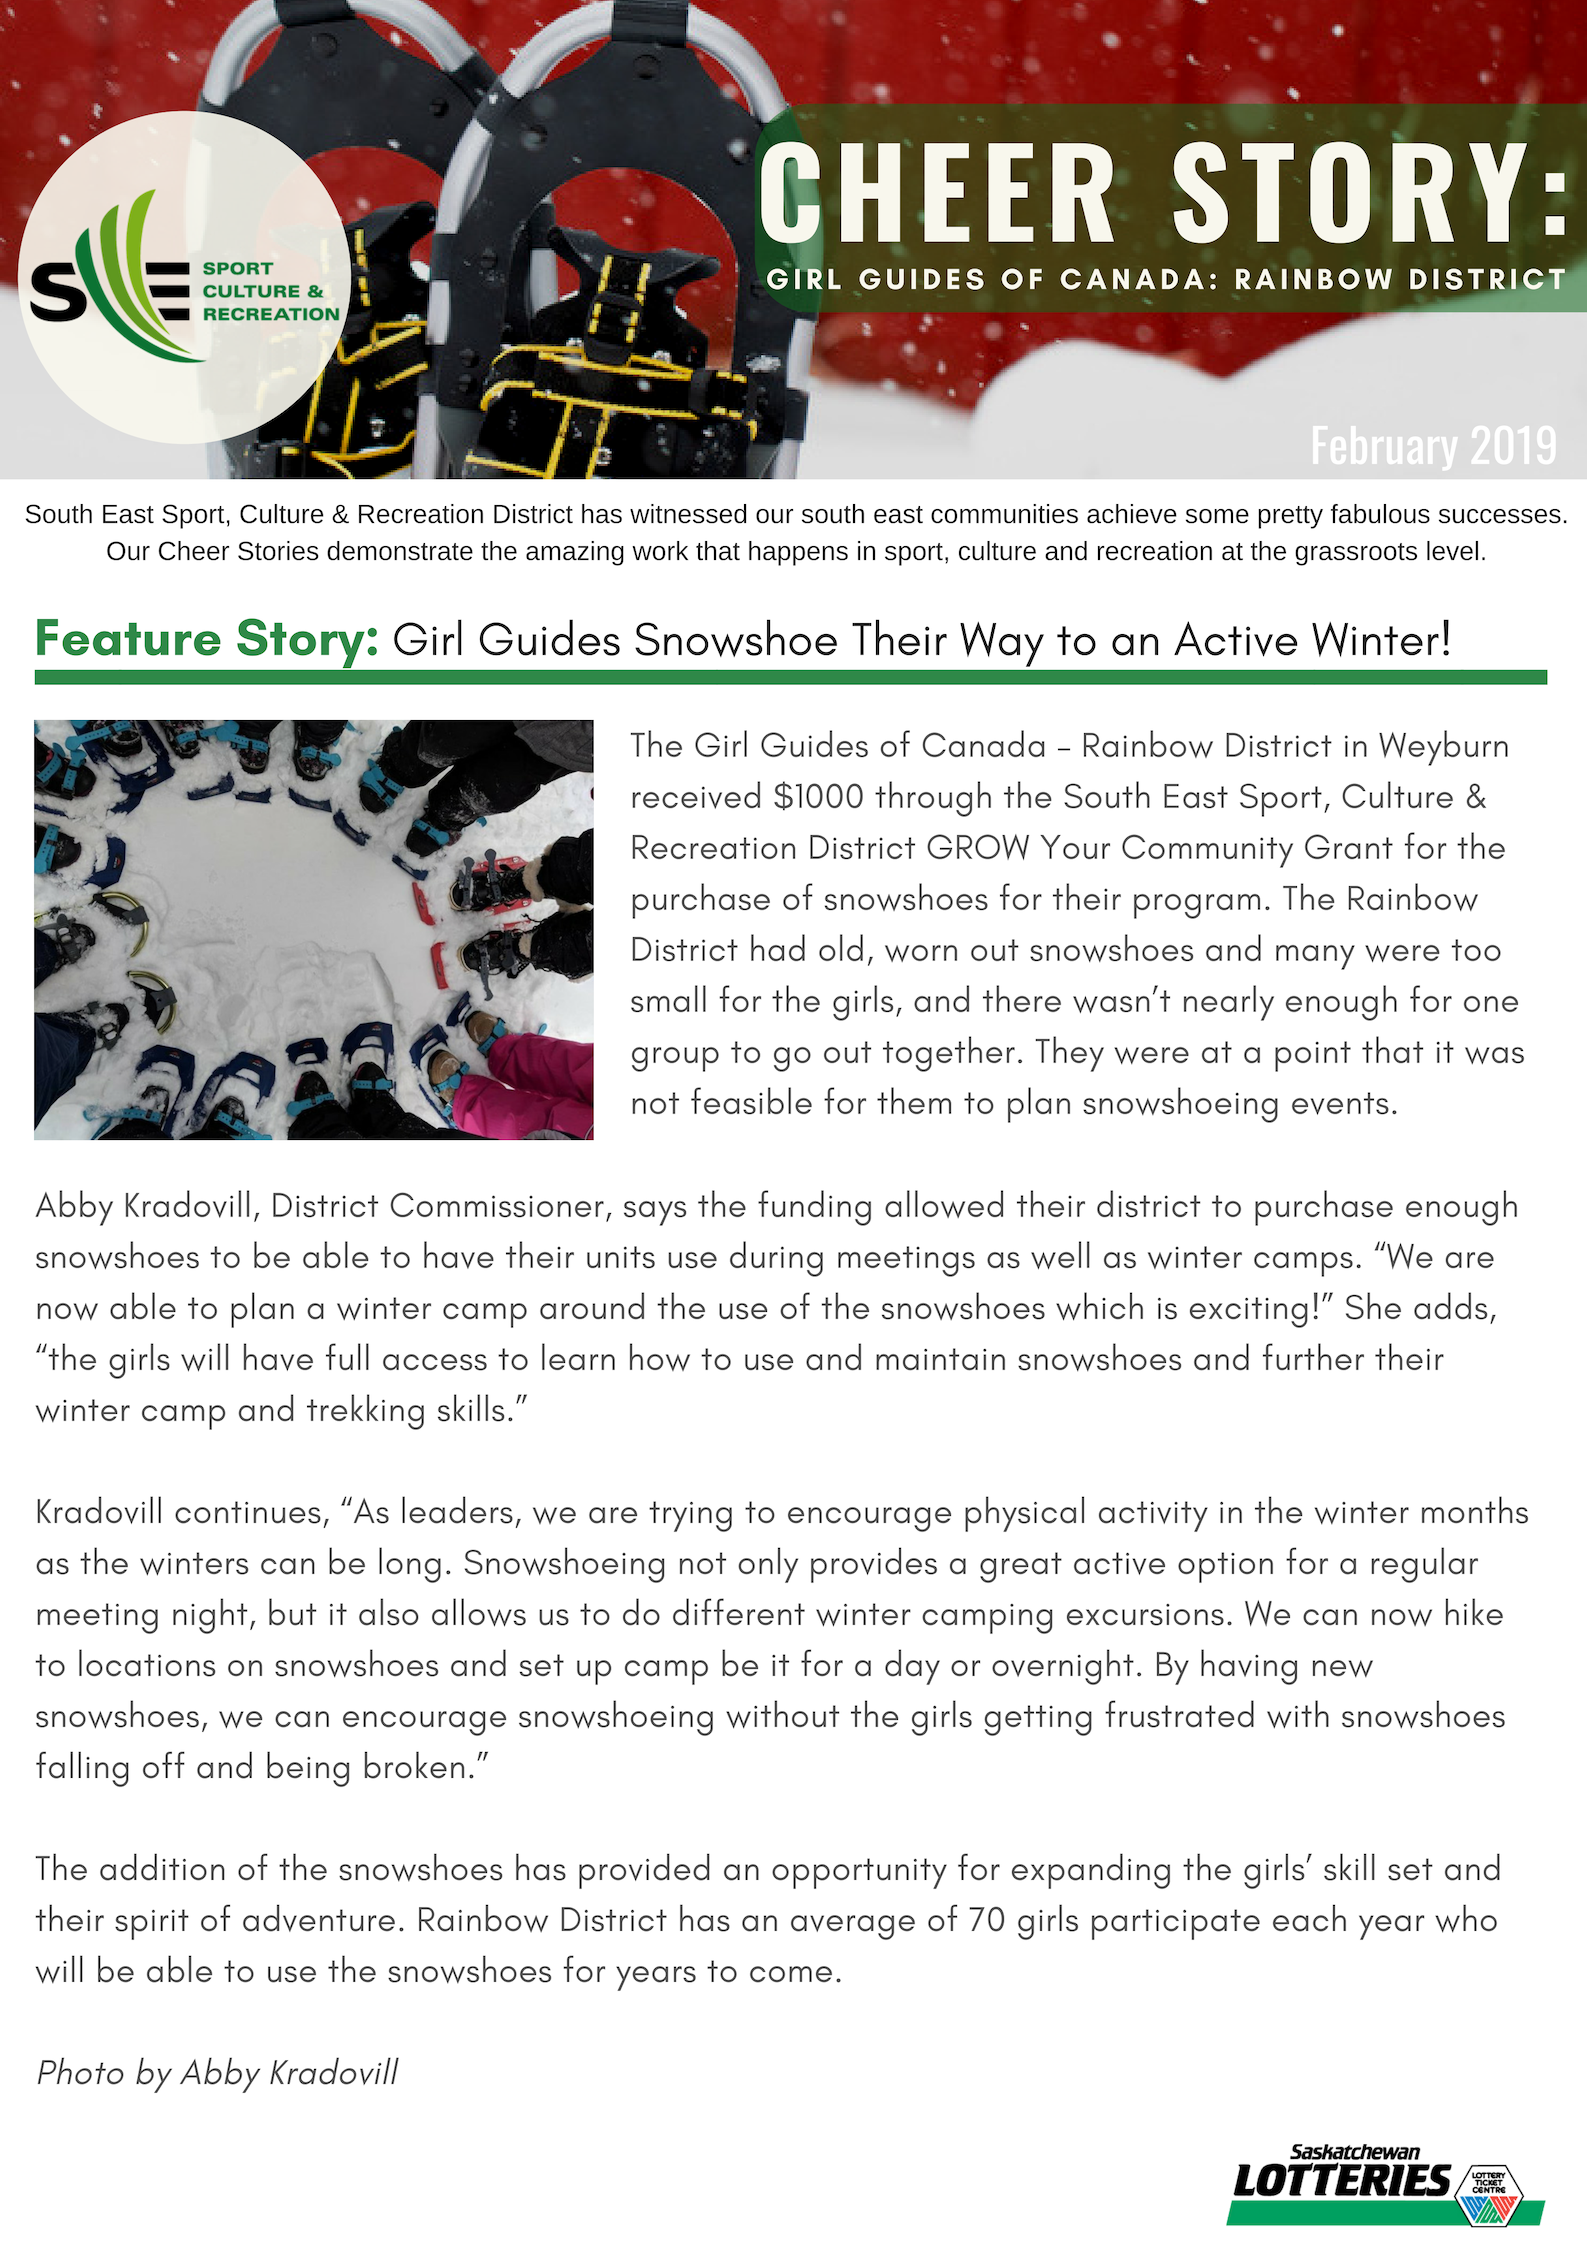 Cheer Story: Girl Guides Snowshoe Their Way to an Active Winter! - Image 1